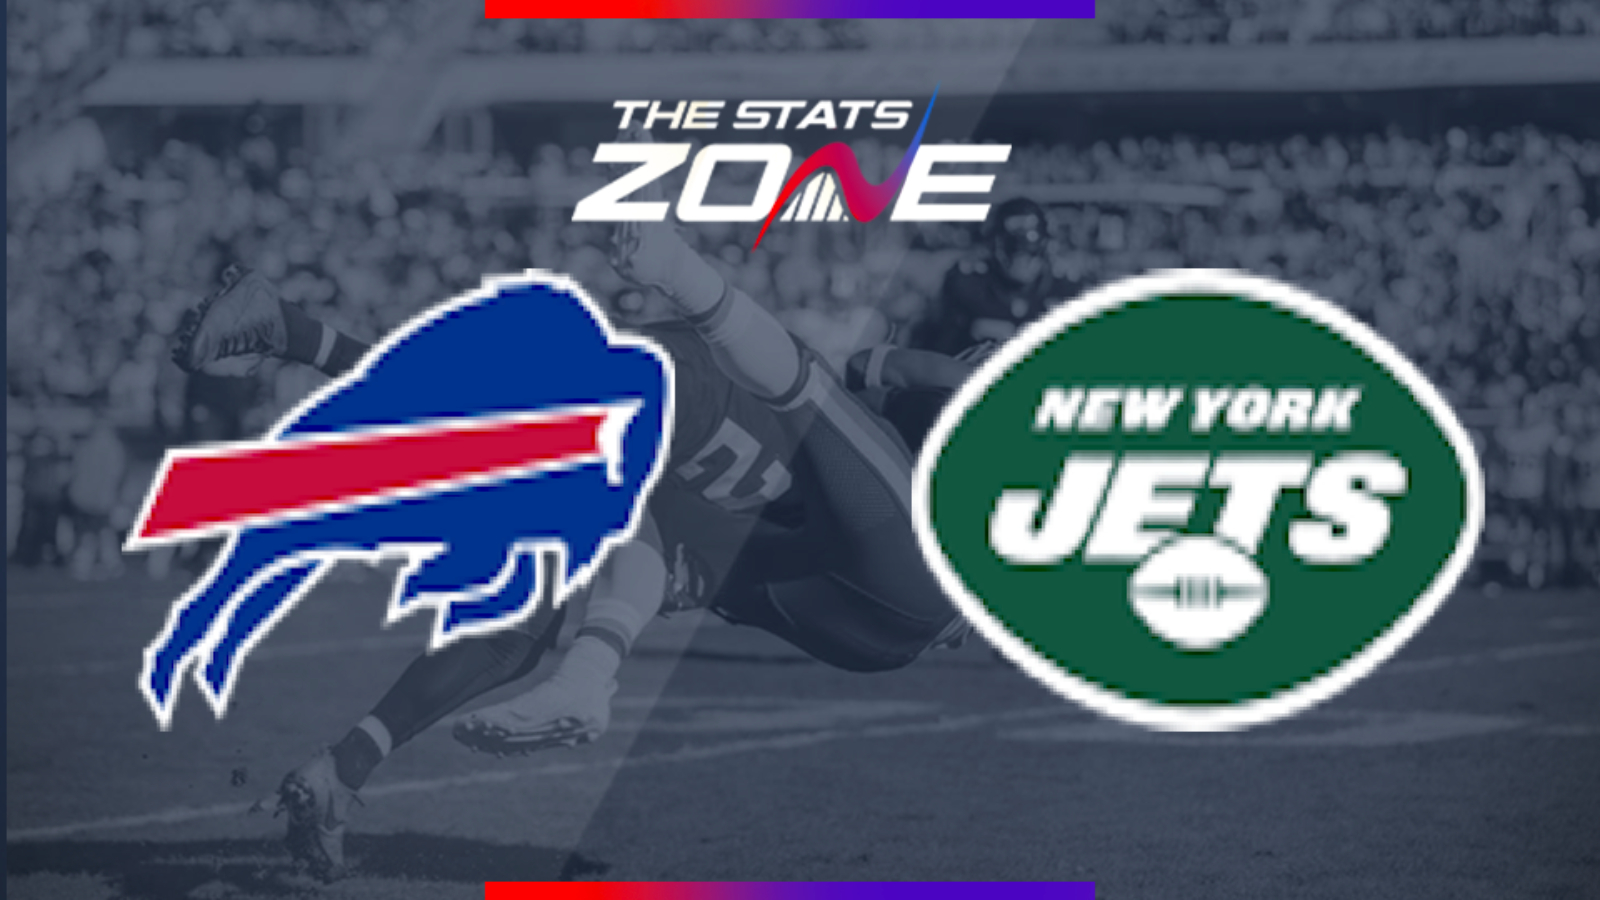 2019 Nfl Buffalo Bills New York Jets Preview Prediction The Stats Zone